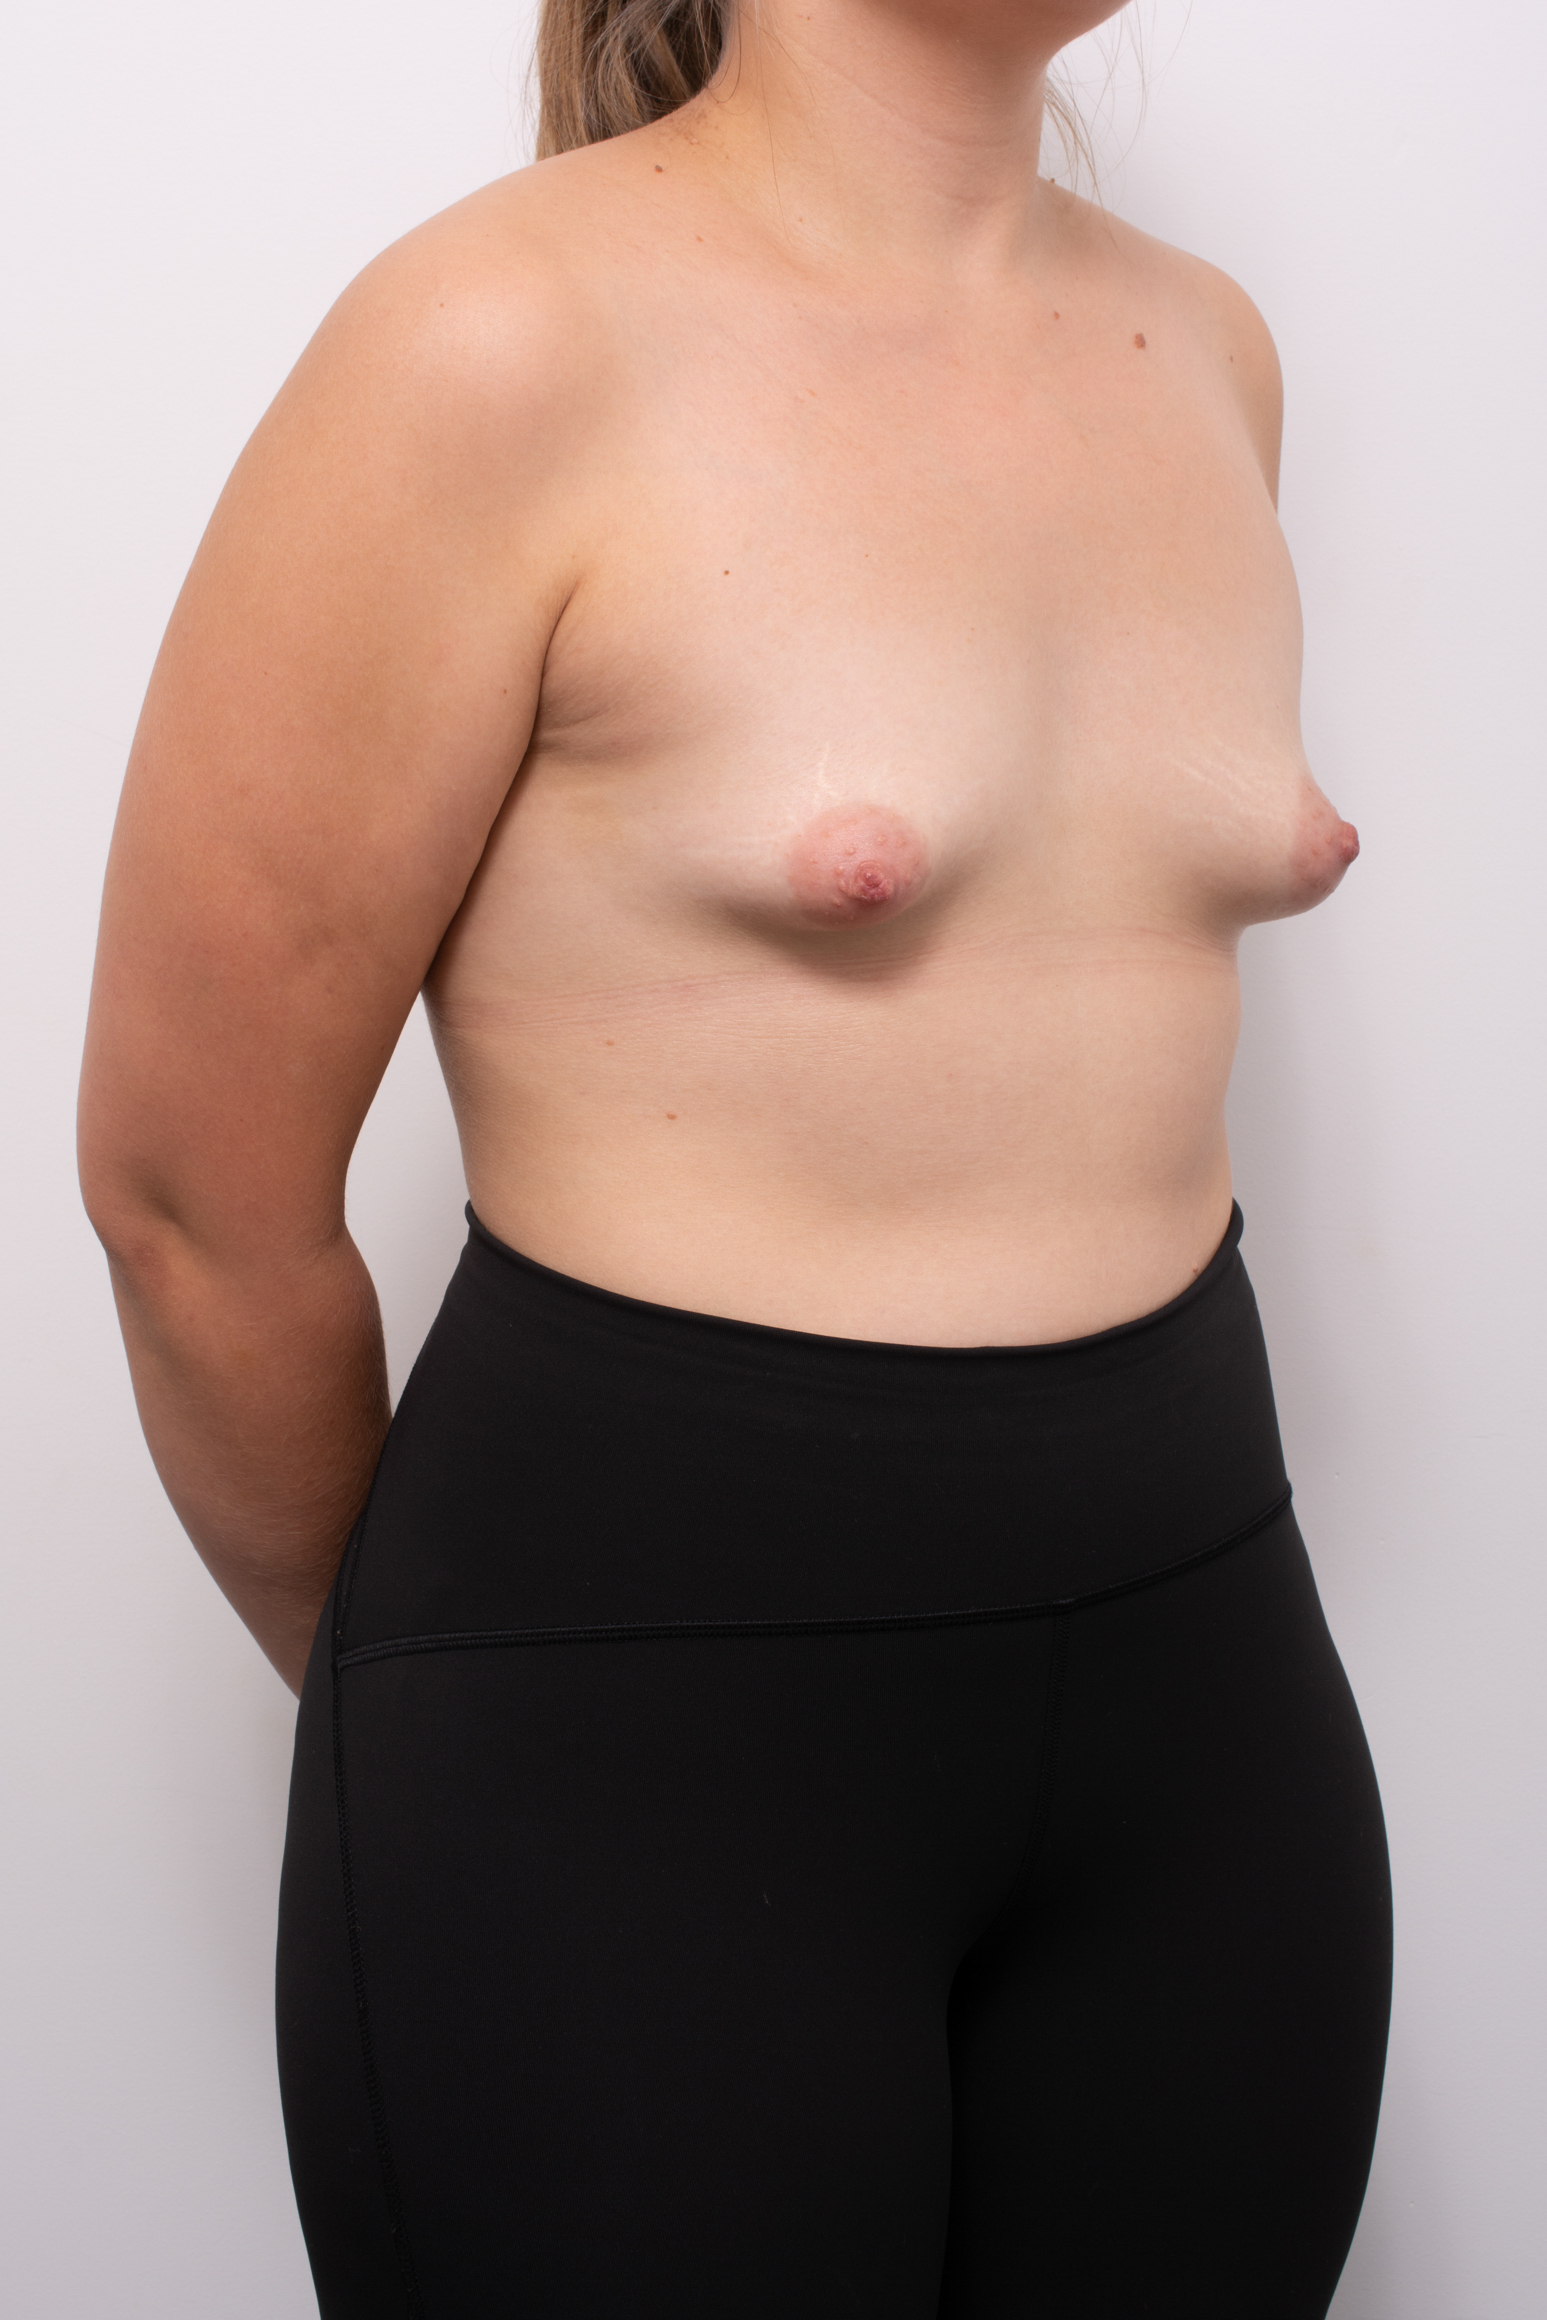 correction of tuberous breasts (6 of 7)